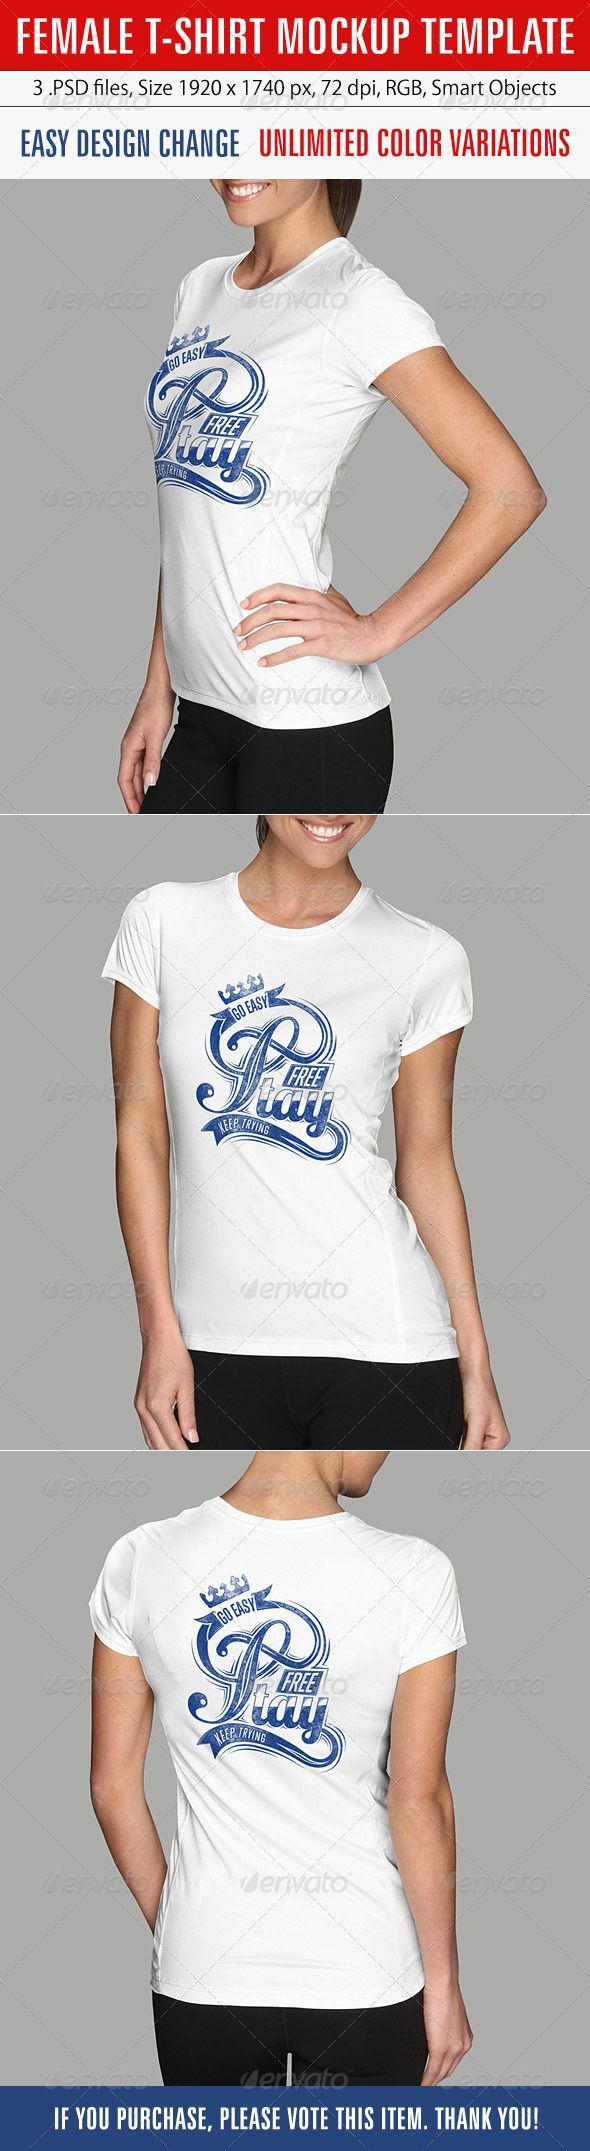 Scalable t shirt mockups more info - Buy Female T Shirt Mockup Template By Grapulo On Graphicriver Female T Shirt Mockup 3 Psd File Easy Design And Color Change Unlimited Colours Smart